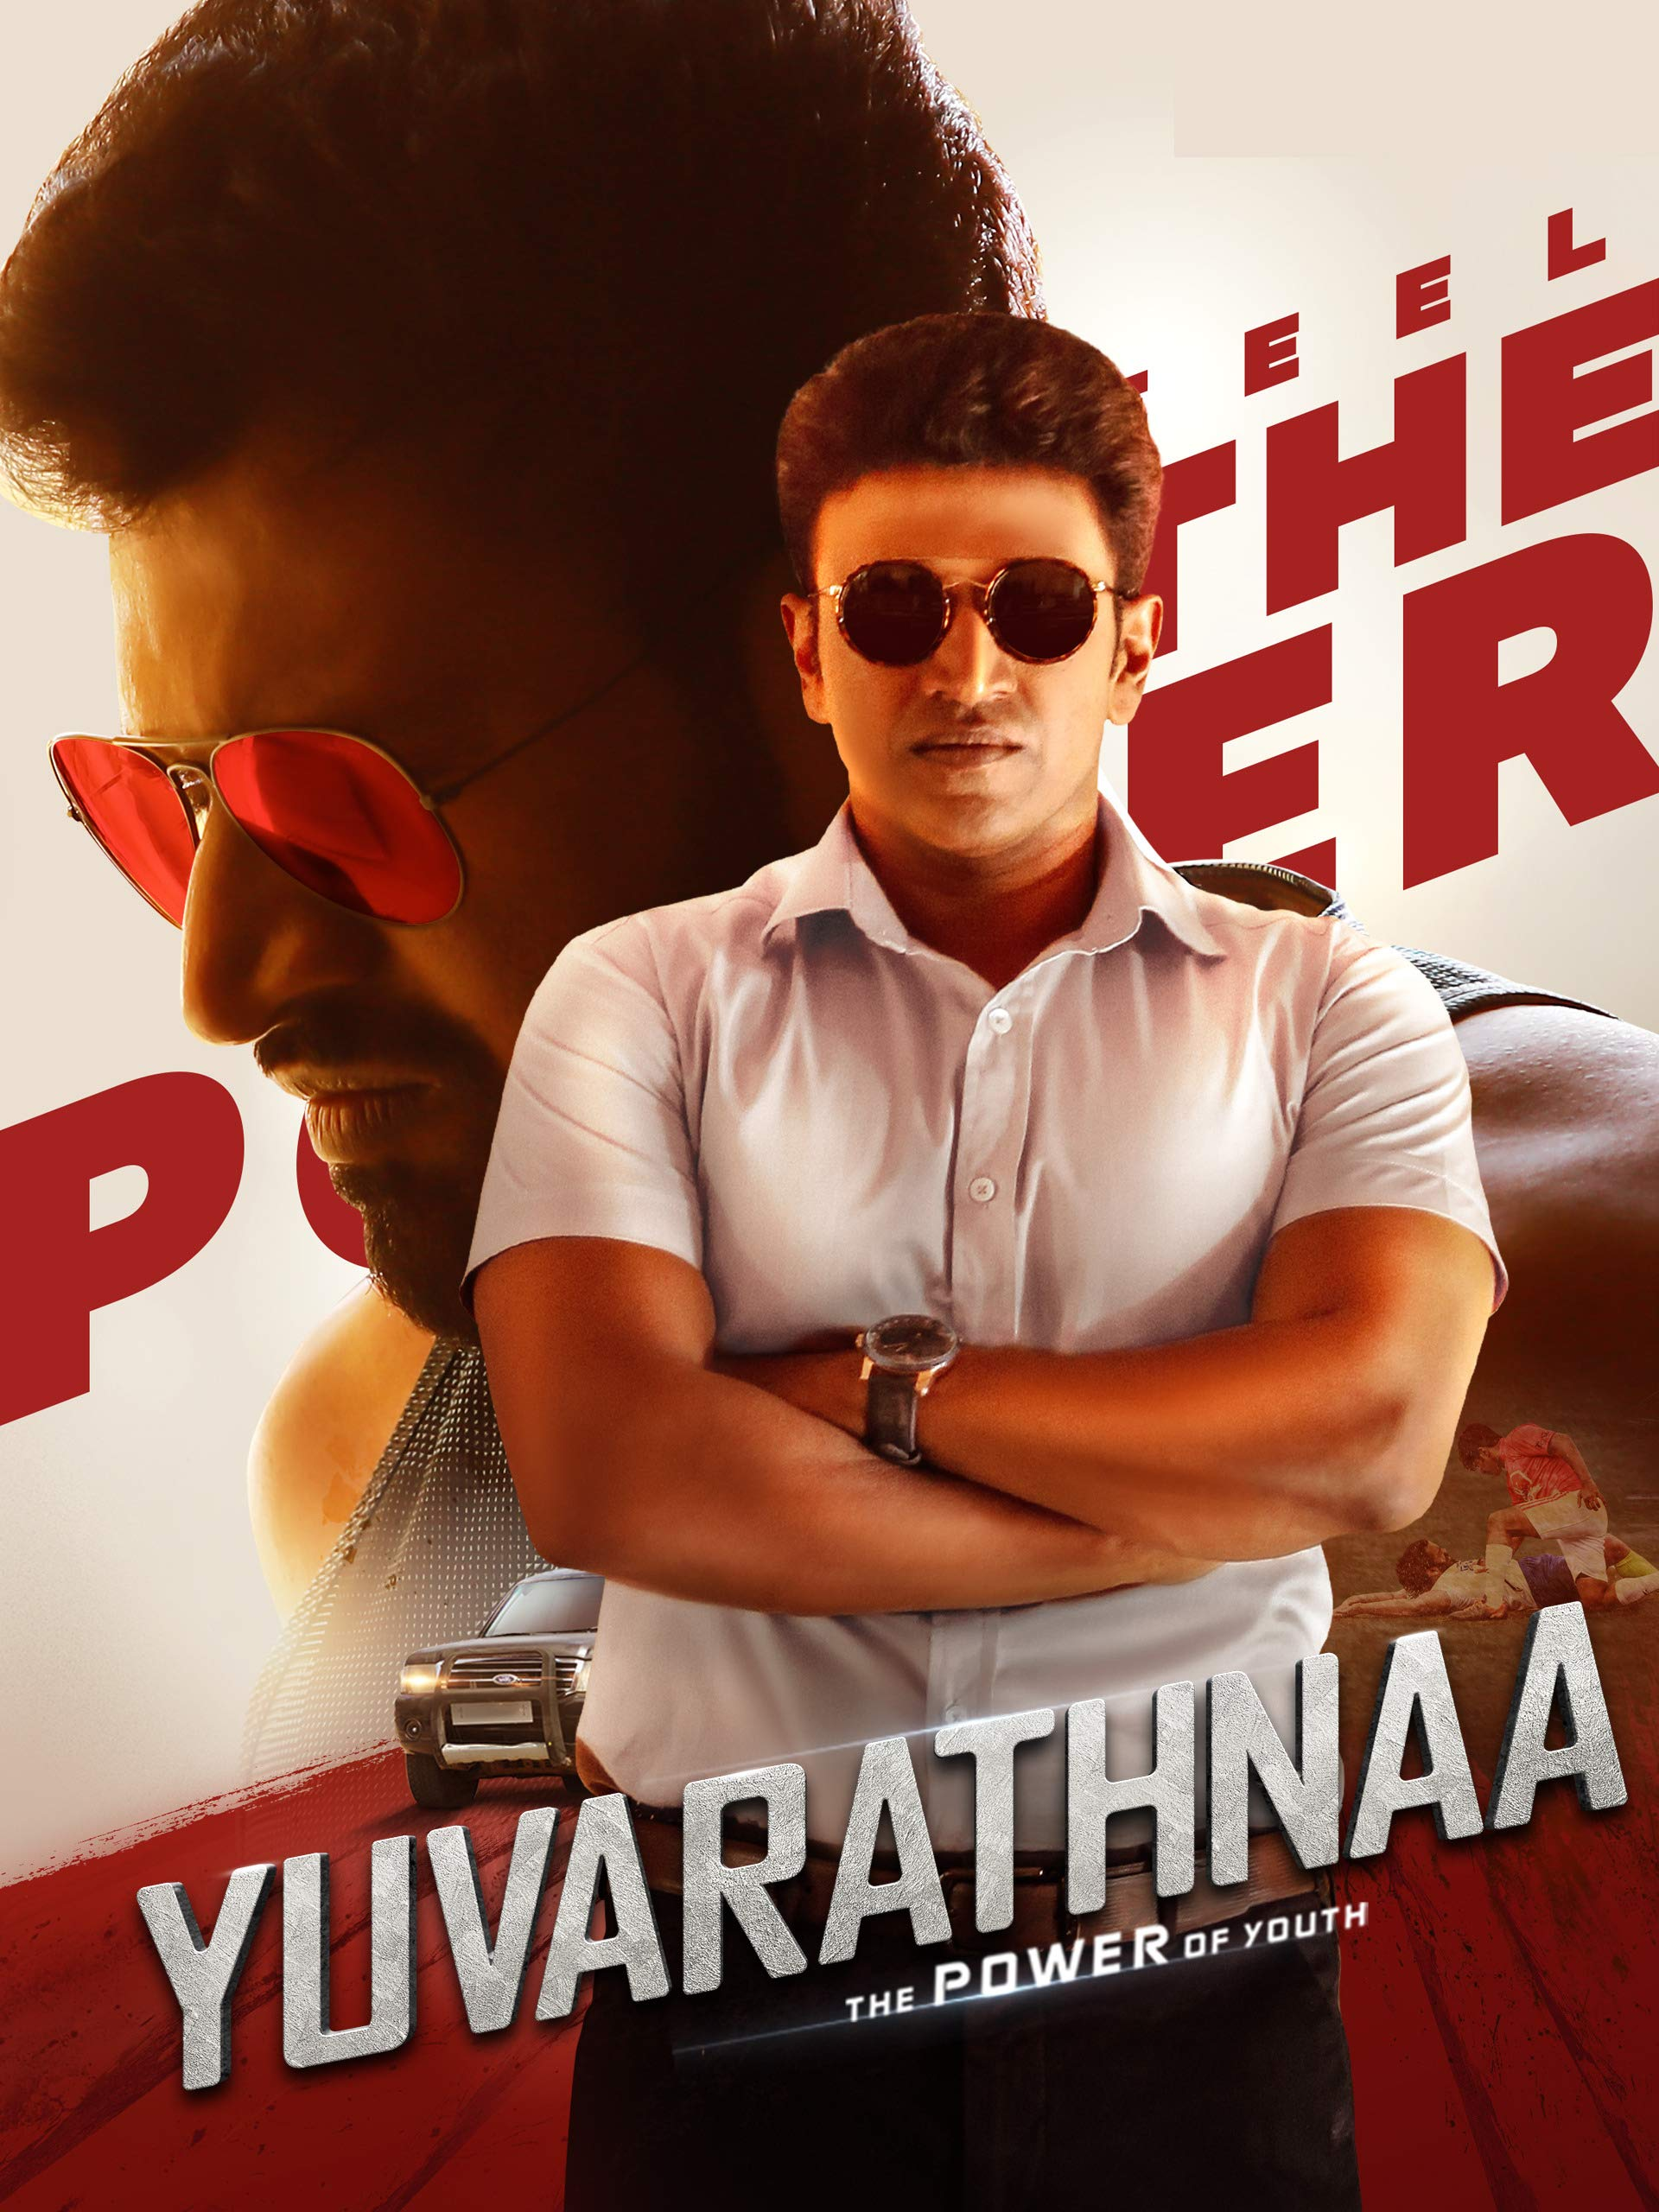 Yuvarathnaa 2021 Hindi Dubbed 720p HDRip ESub 1.41GB Download